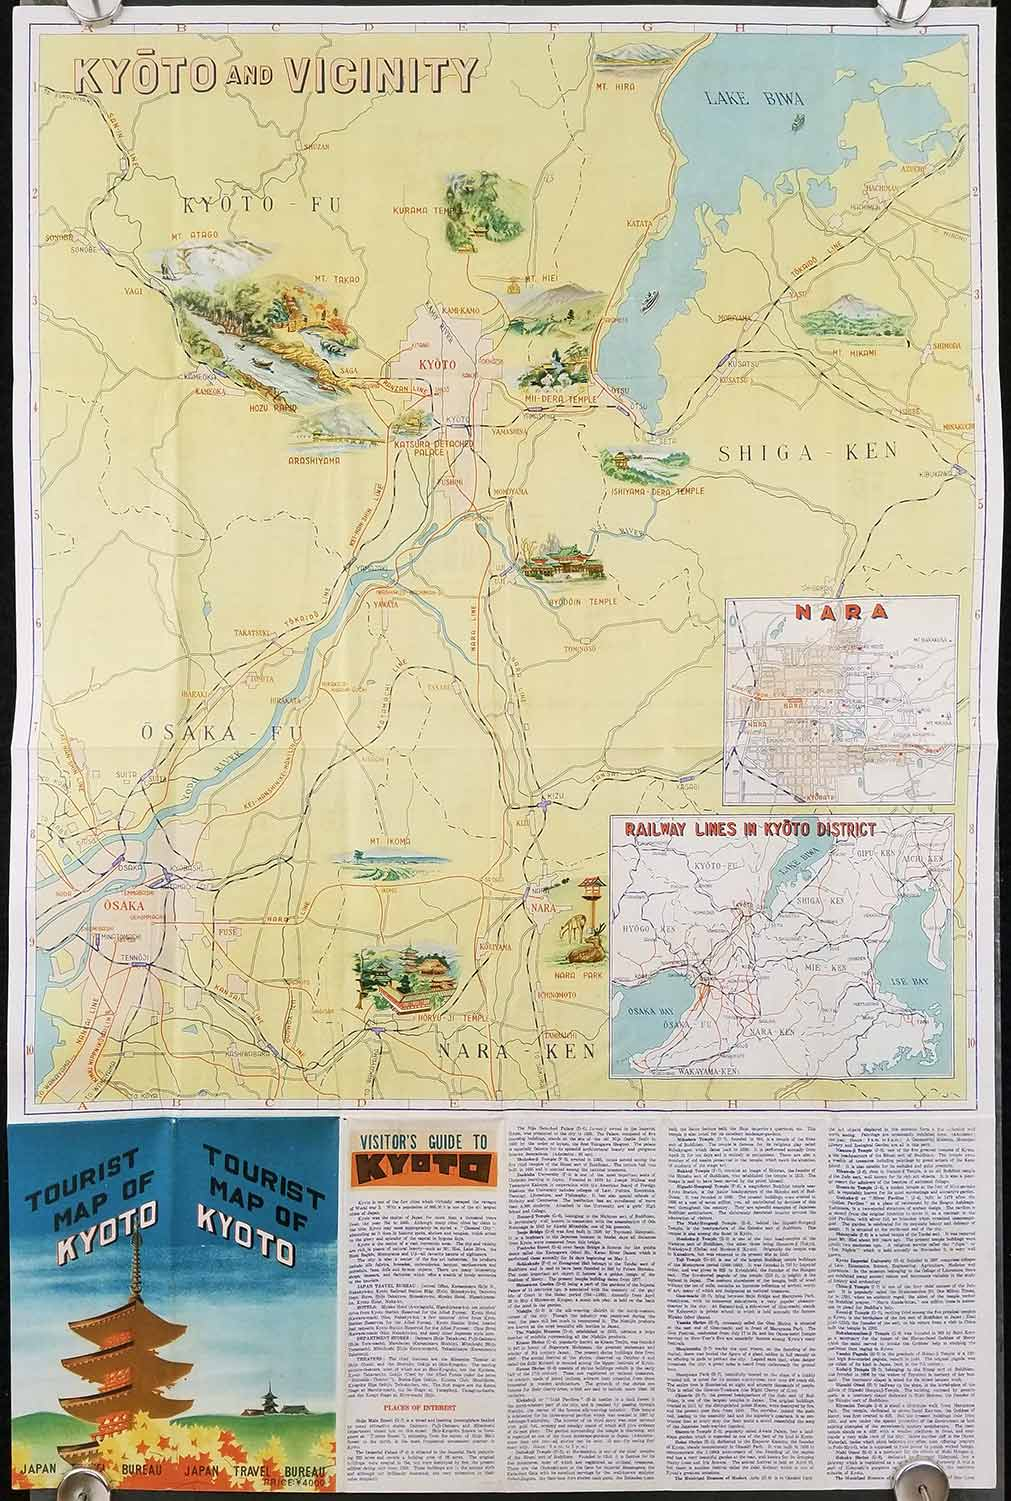 Tourist Map of Kyoto Map titles Kyoto Kyoto and Vicinity JAPAN